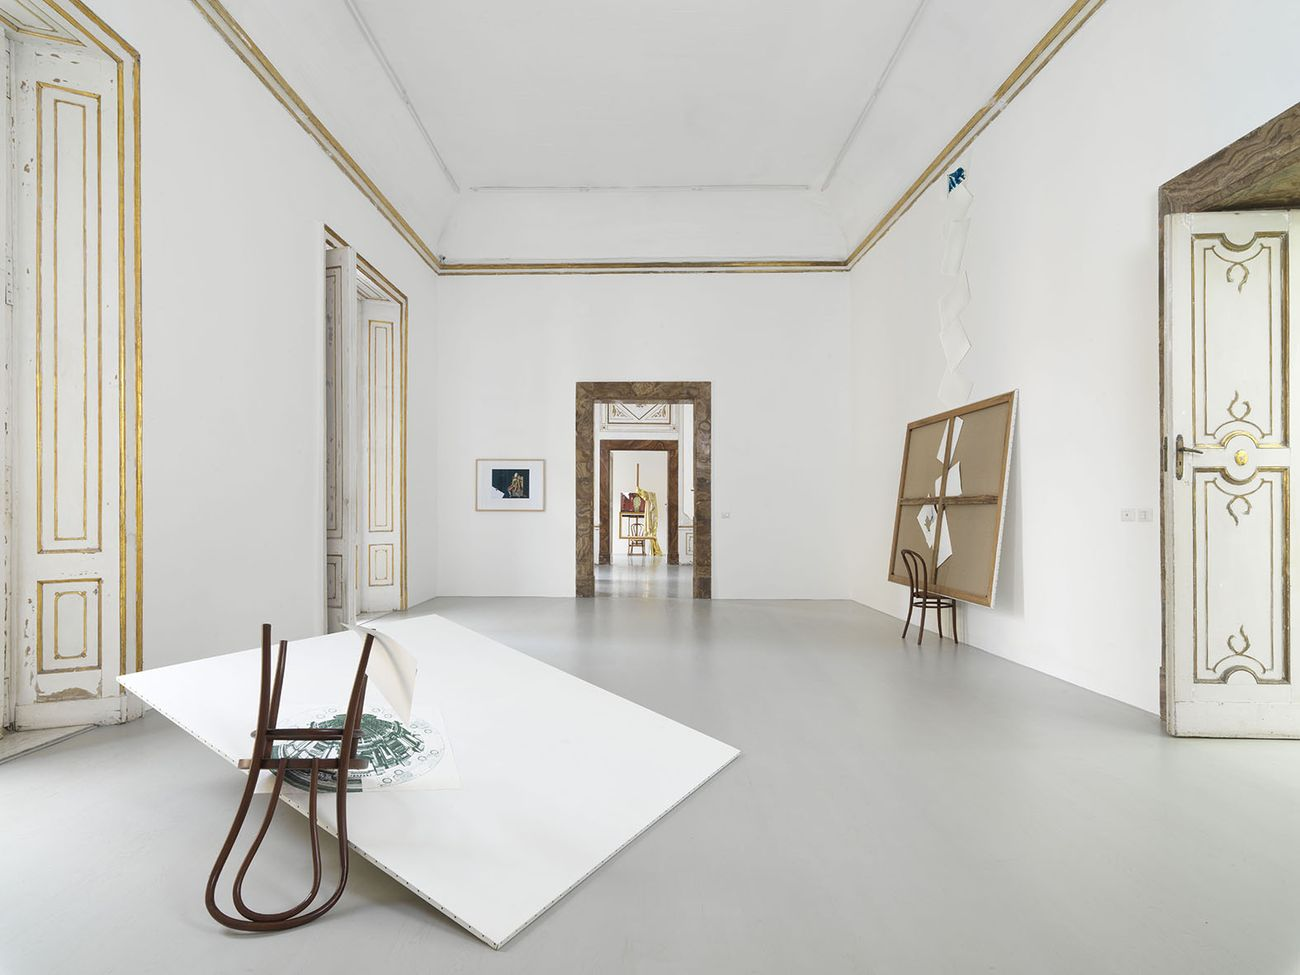 Giulio Paolini. Fuori quadro. Exhibition view at Alfonso Artiaco, Napoli 2021. Courtesy Alfonso Artiaco